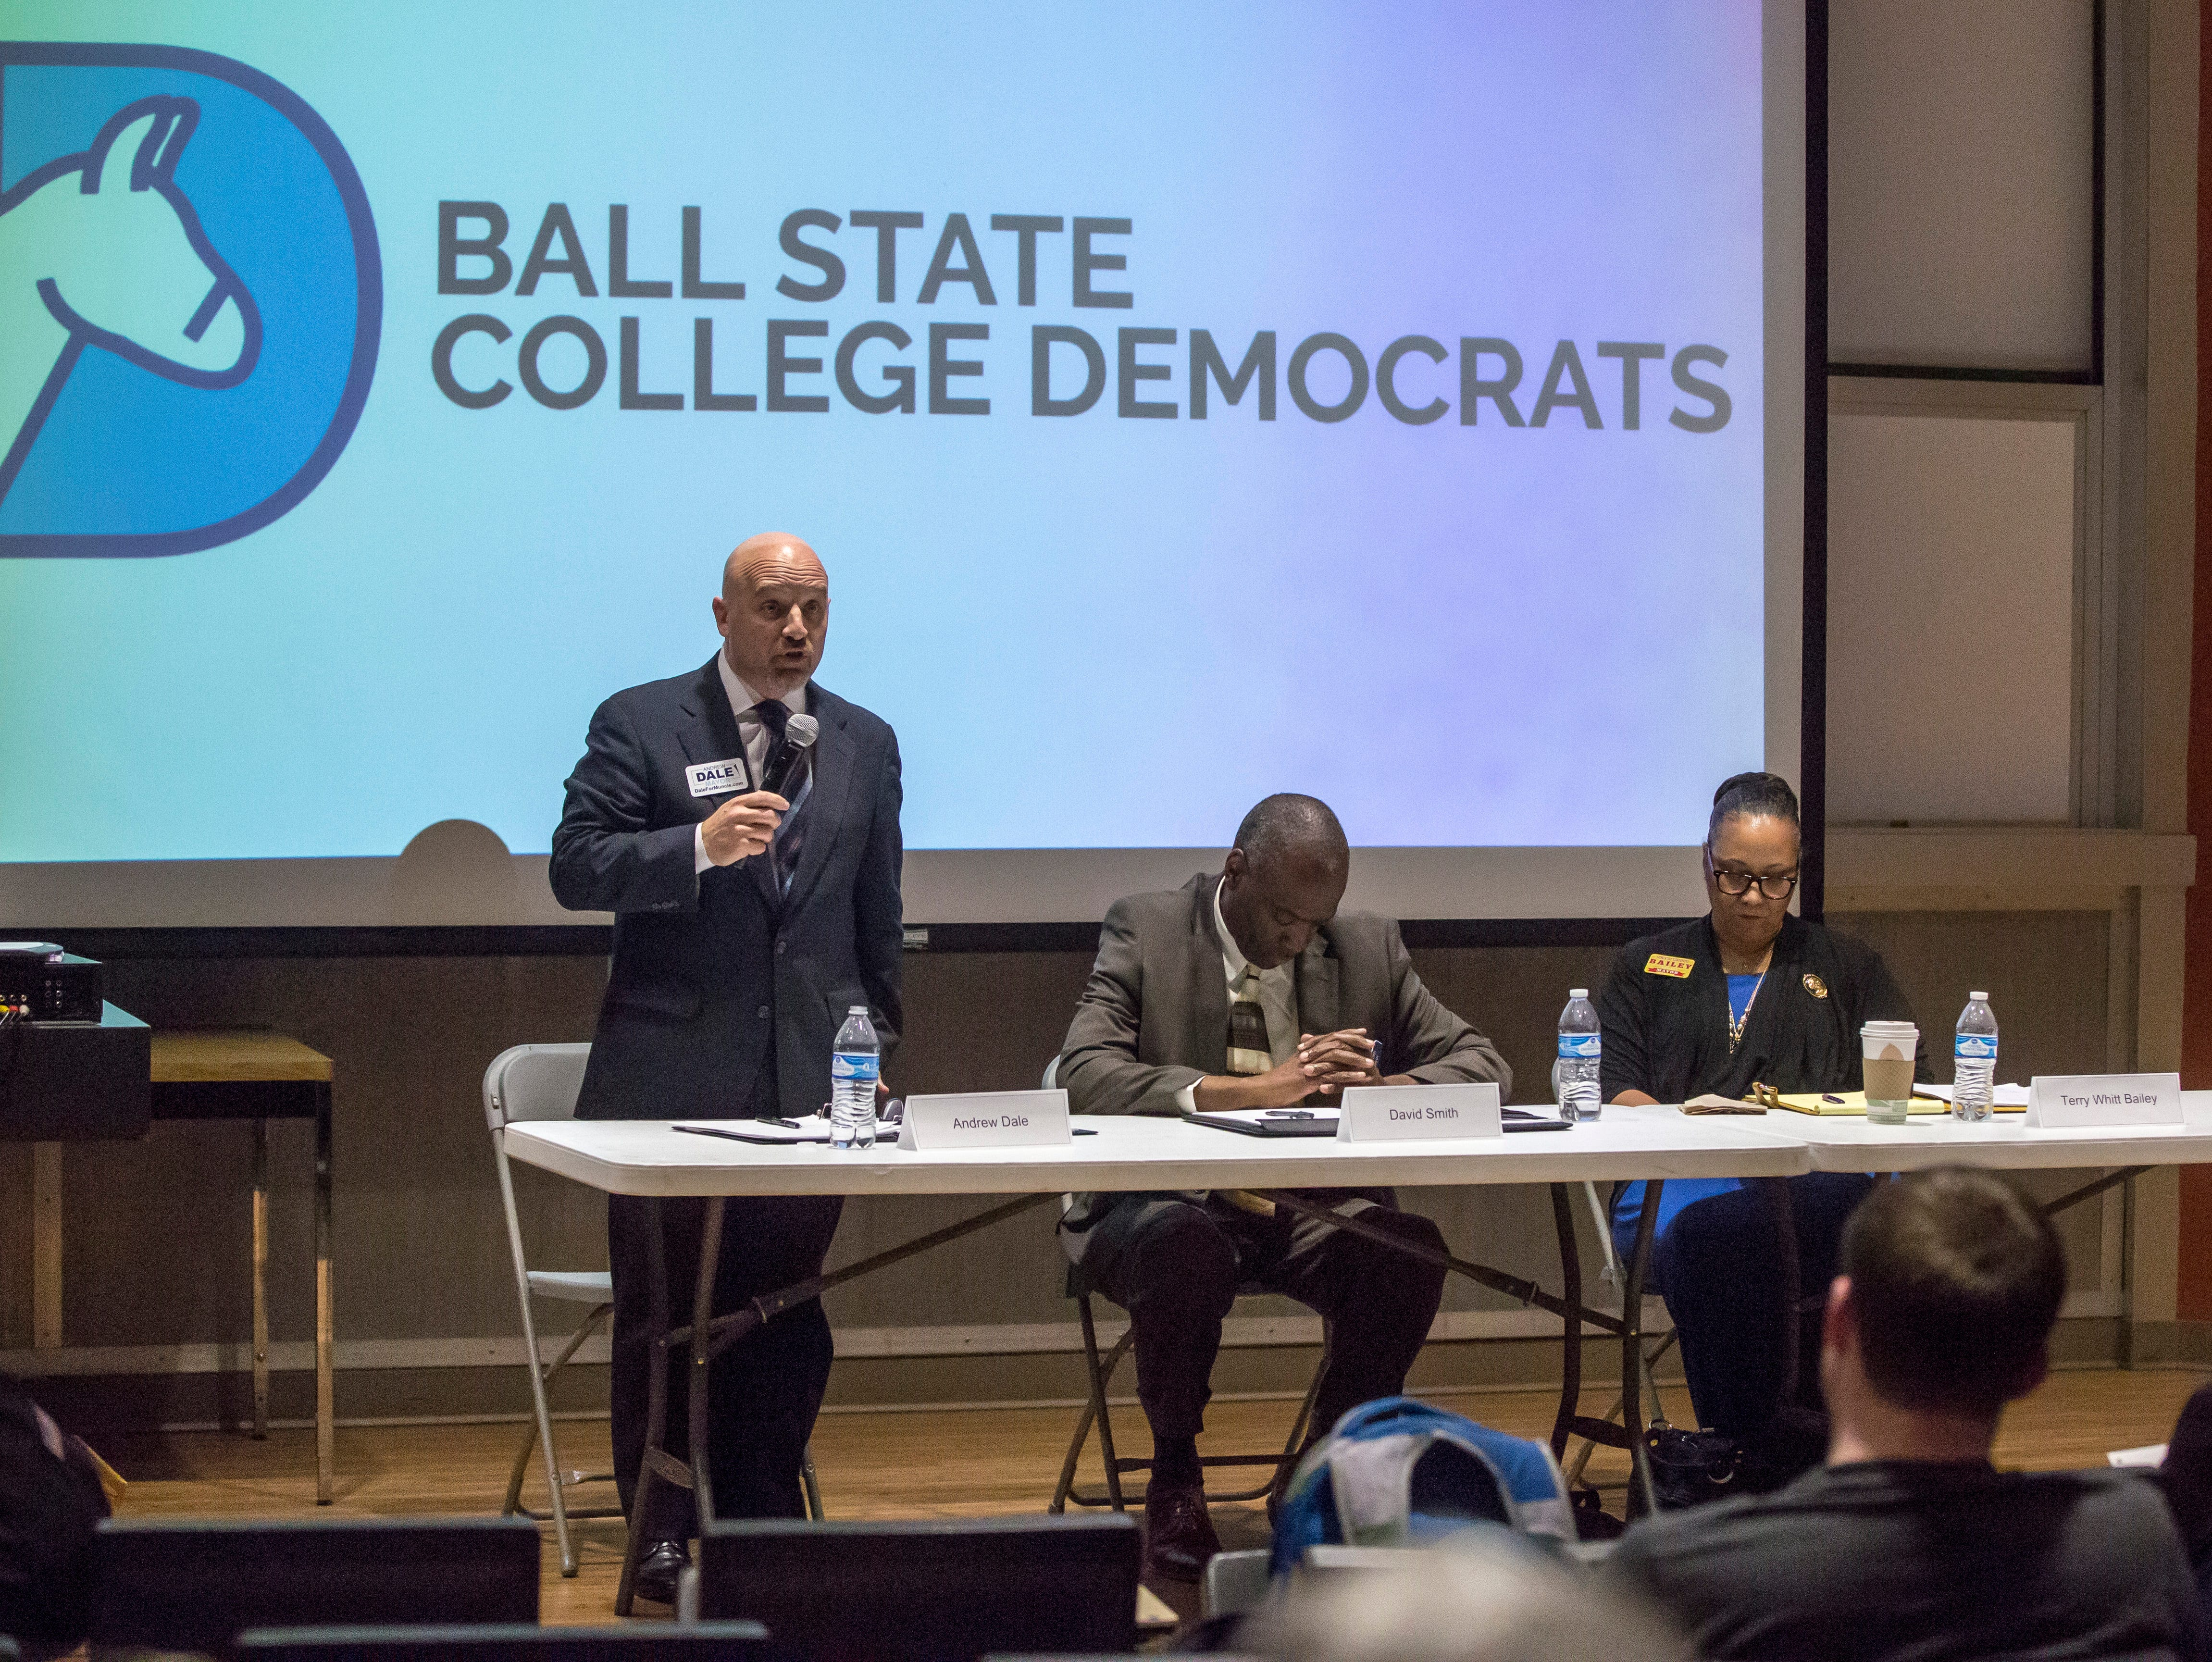 Andrew Dale answers a question during the BSU College Democrat debate Tuesday evening at Ball State University. Dale appeared on stage with Saul Riley, Dave Smith and Terry Whitt Bailey.